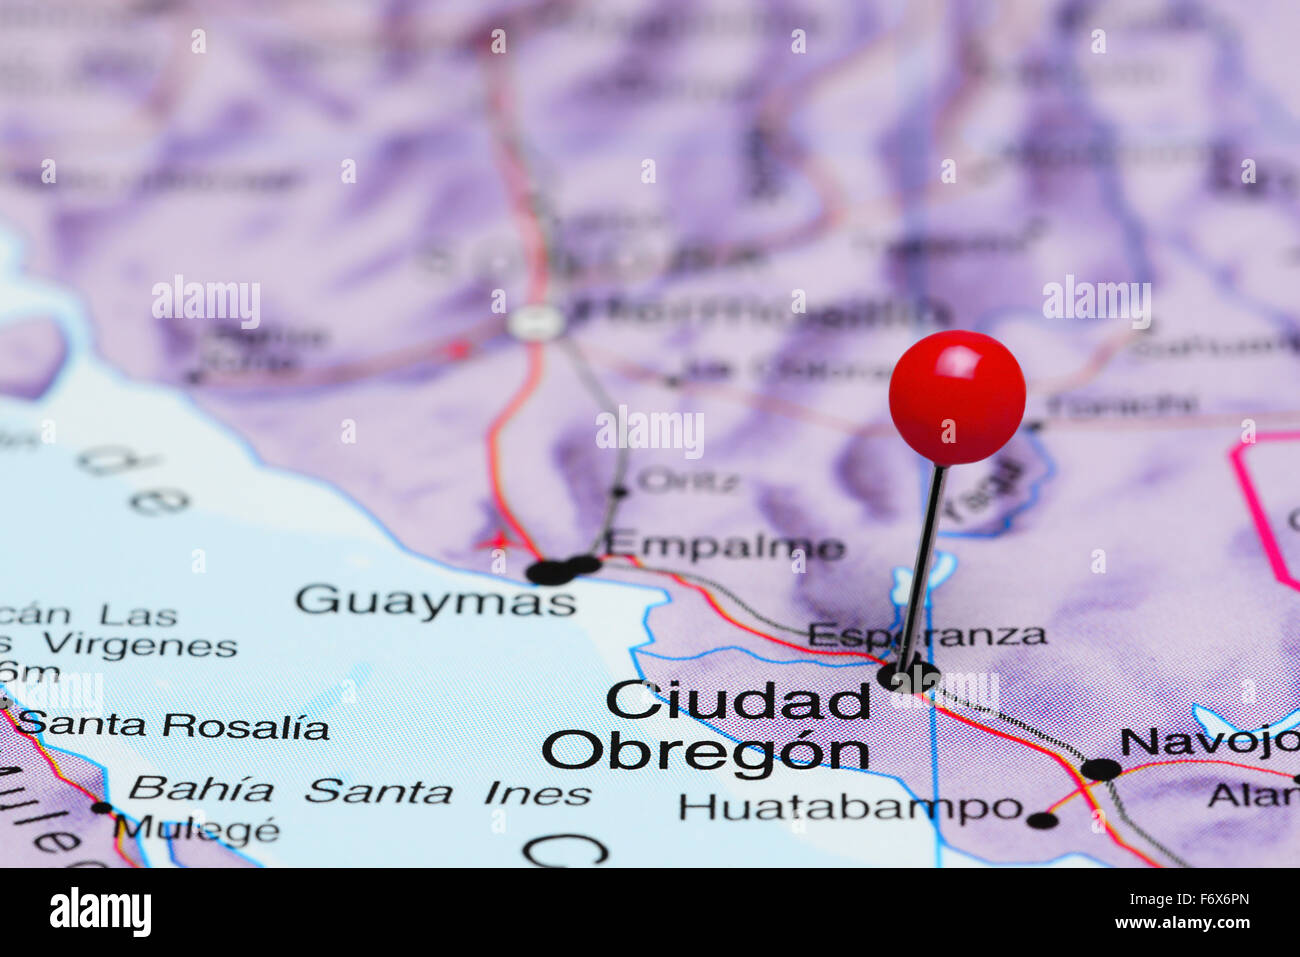 Obregon Mexico Map.Ciudad Obregon Pinned On A Map Of Mexico Stock Photo 90315869 Alamy